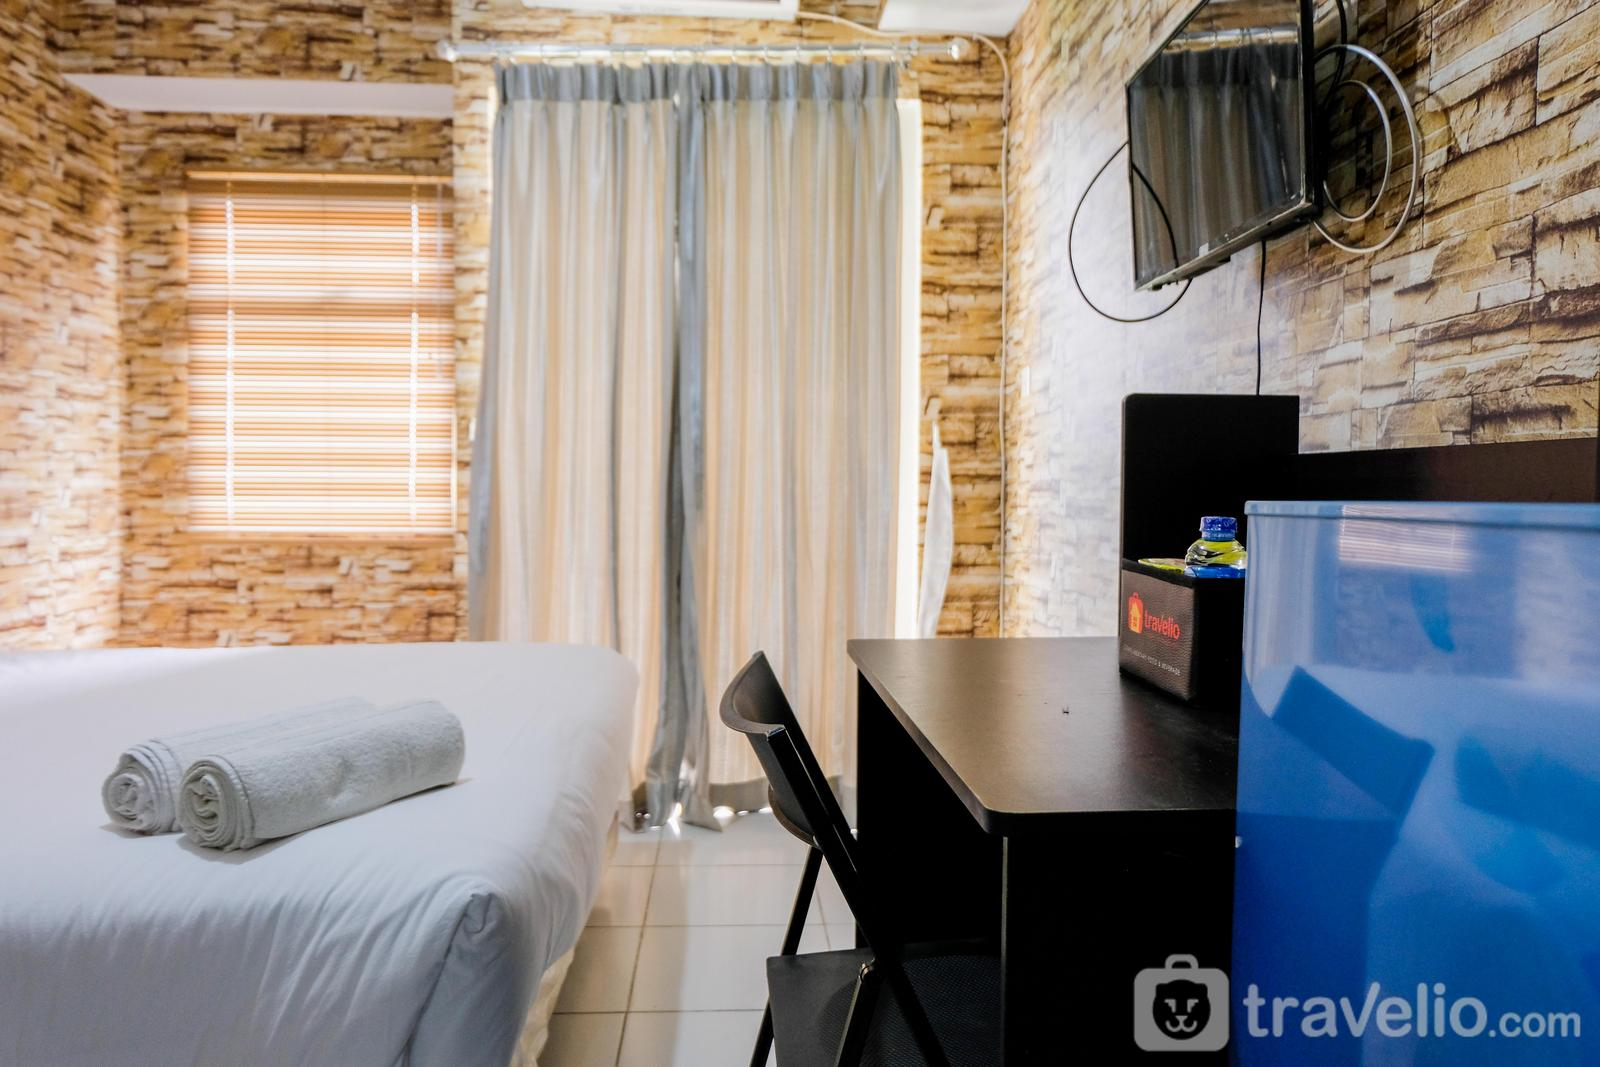 Ayodhya Residence Tangerang - Best Price Studio Room Apartment at Ayodhya Residences By Travelio